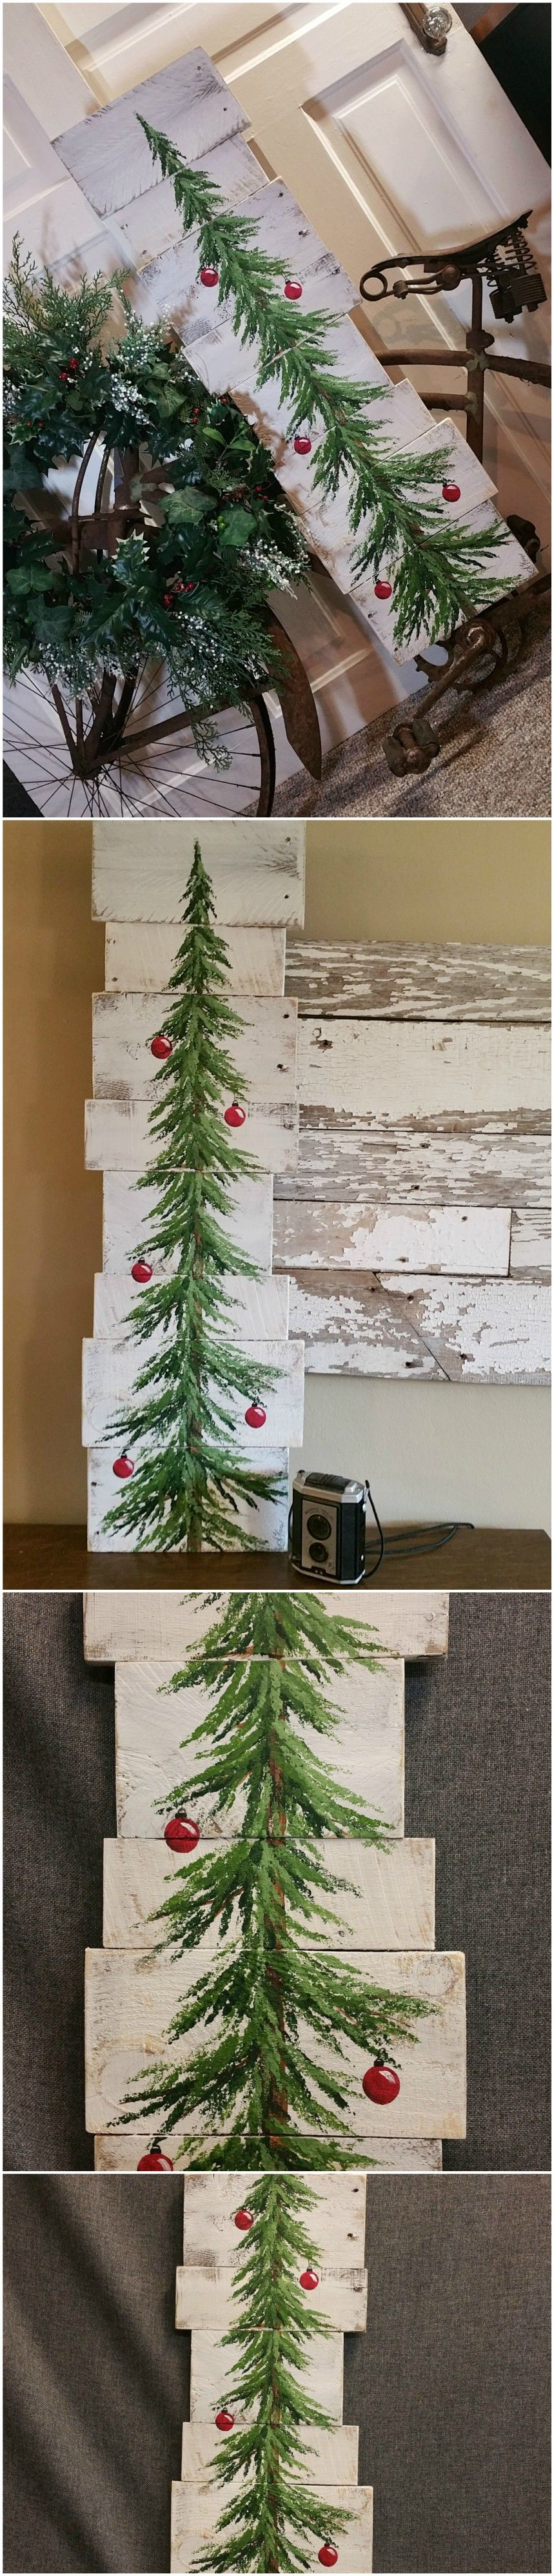 Christmas tree sign farmhouse decor Christmas decoration white